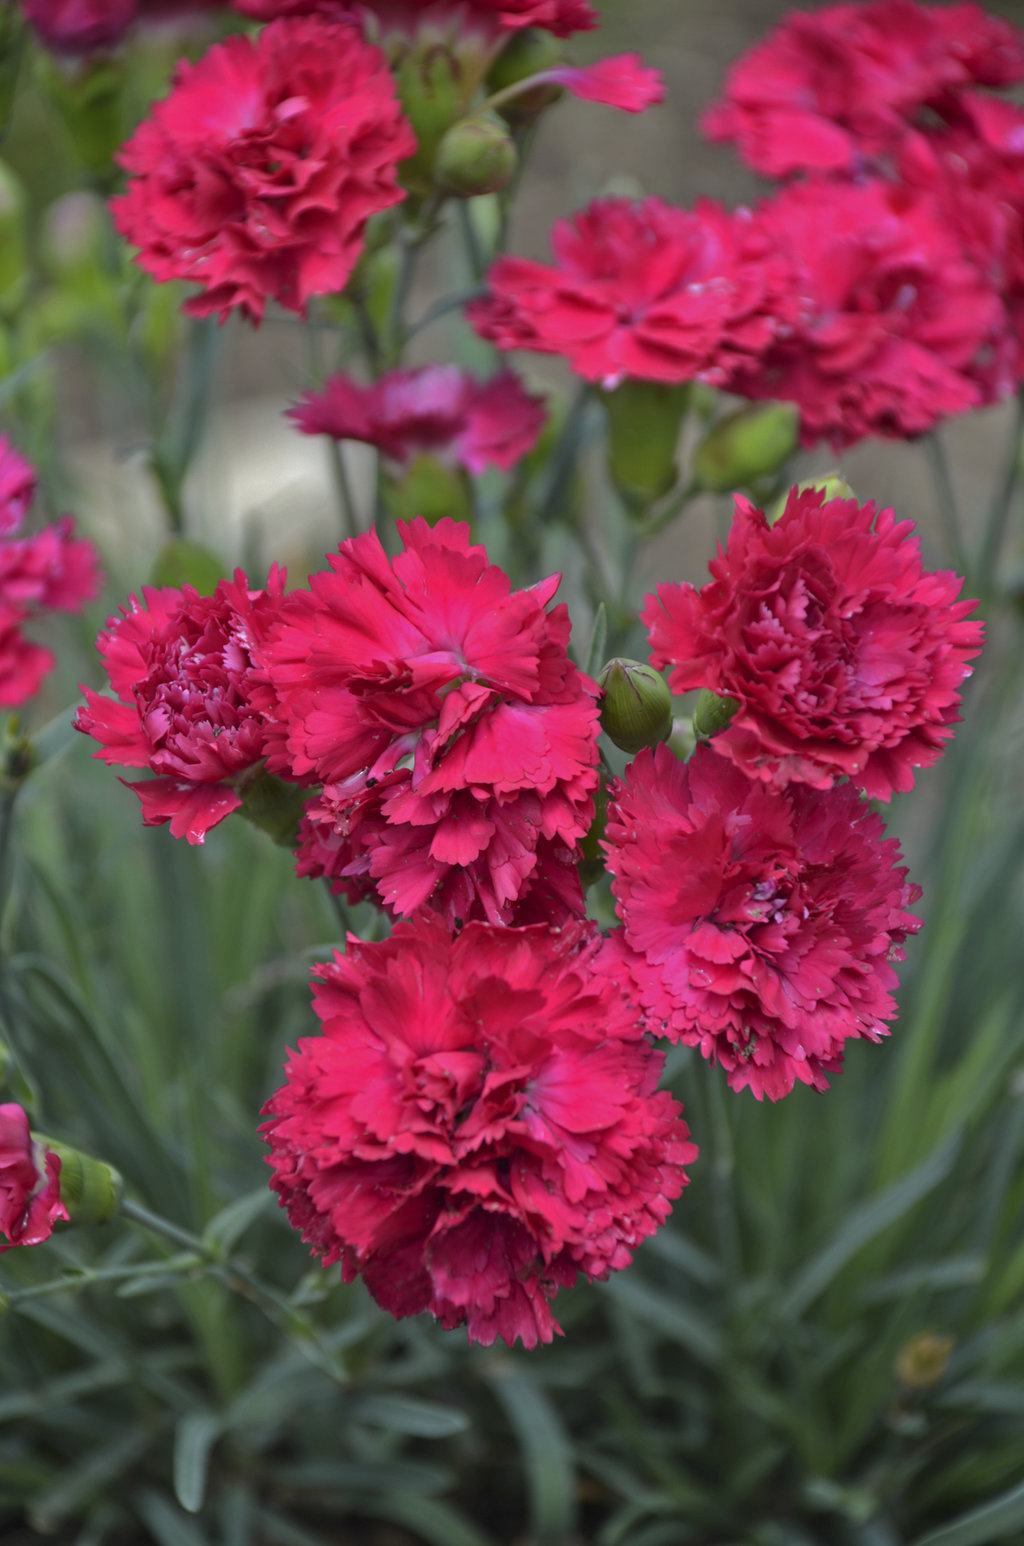 Fruit punch cranberry cocktail pinks dianthus hybrid proven waltersgardens hi24923 dianthus fruit punch reg cranberry cocktailppaf mightylinksfo